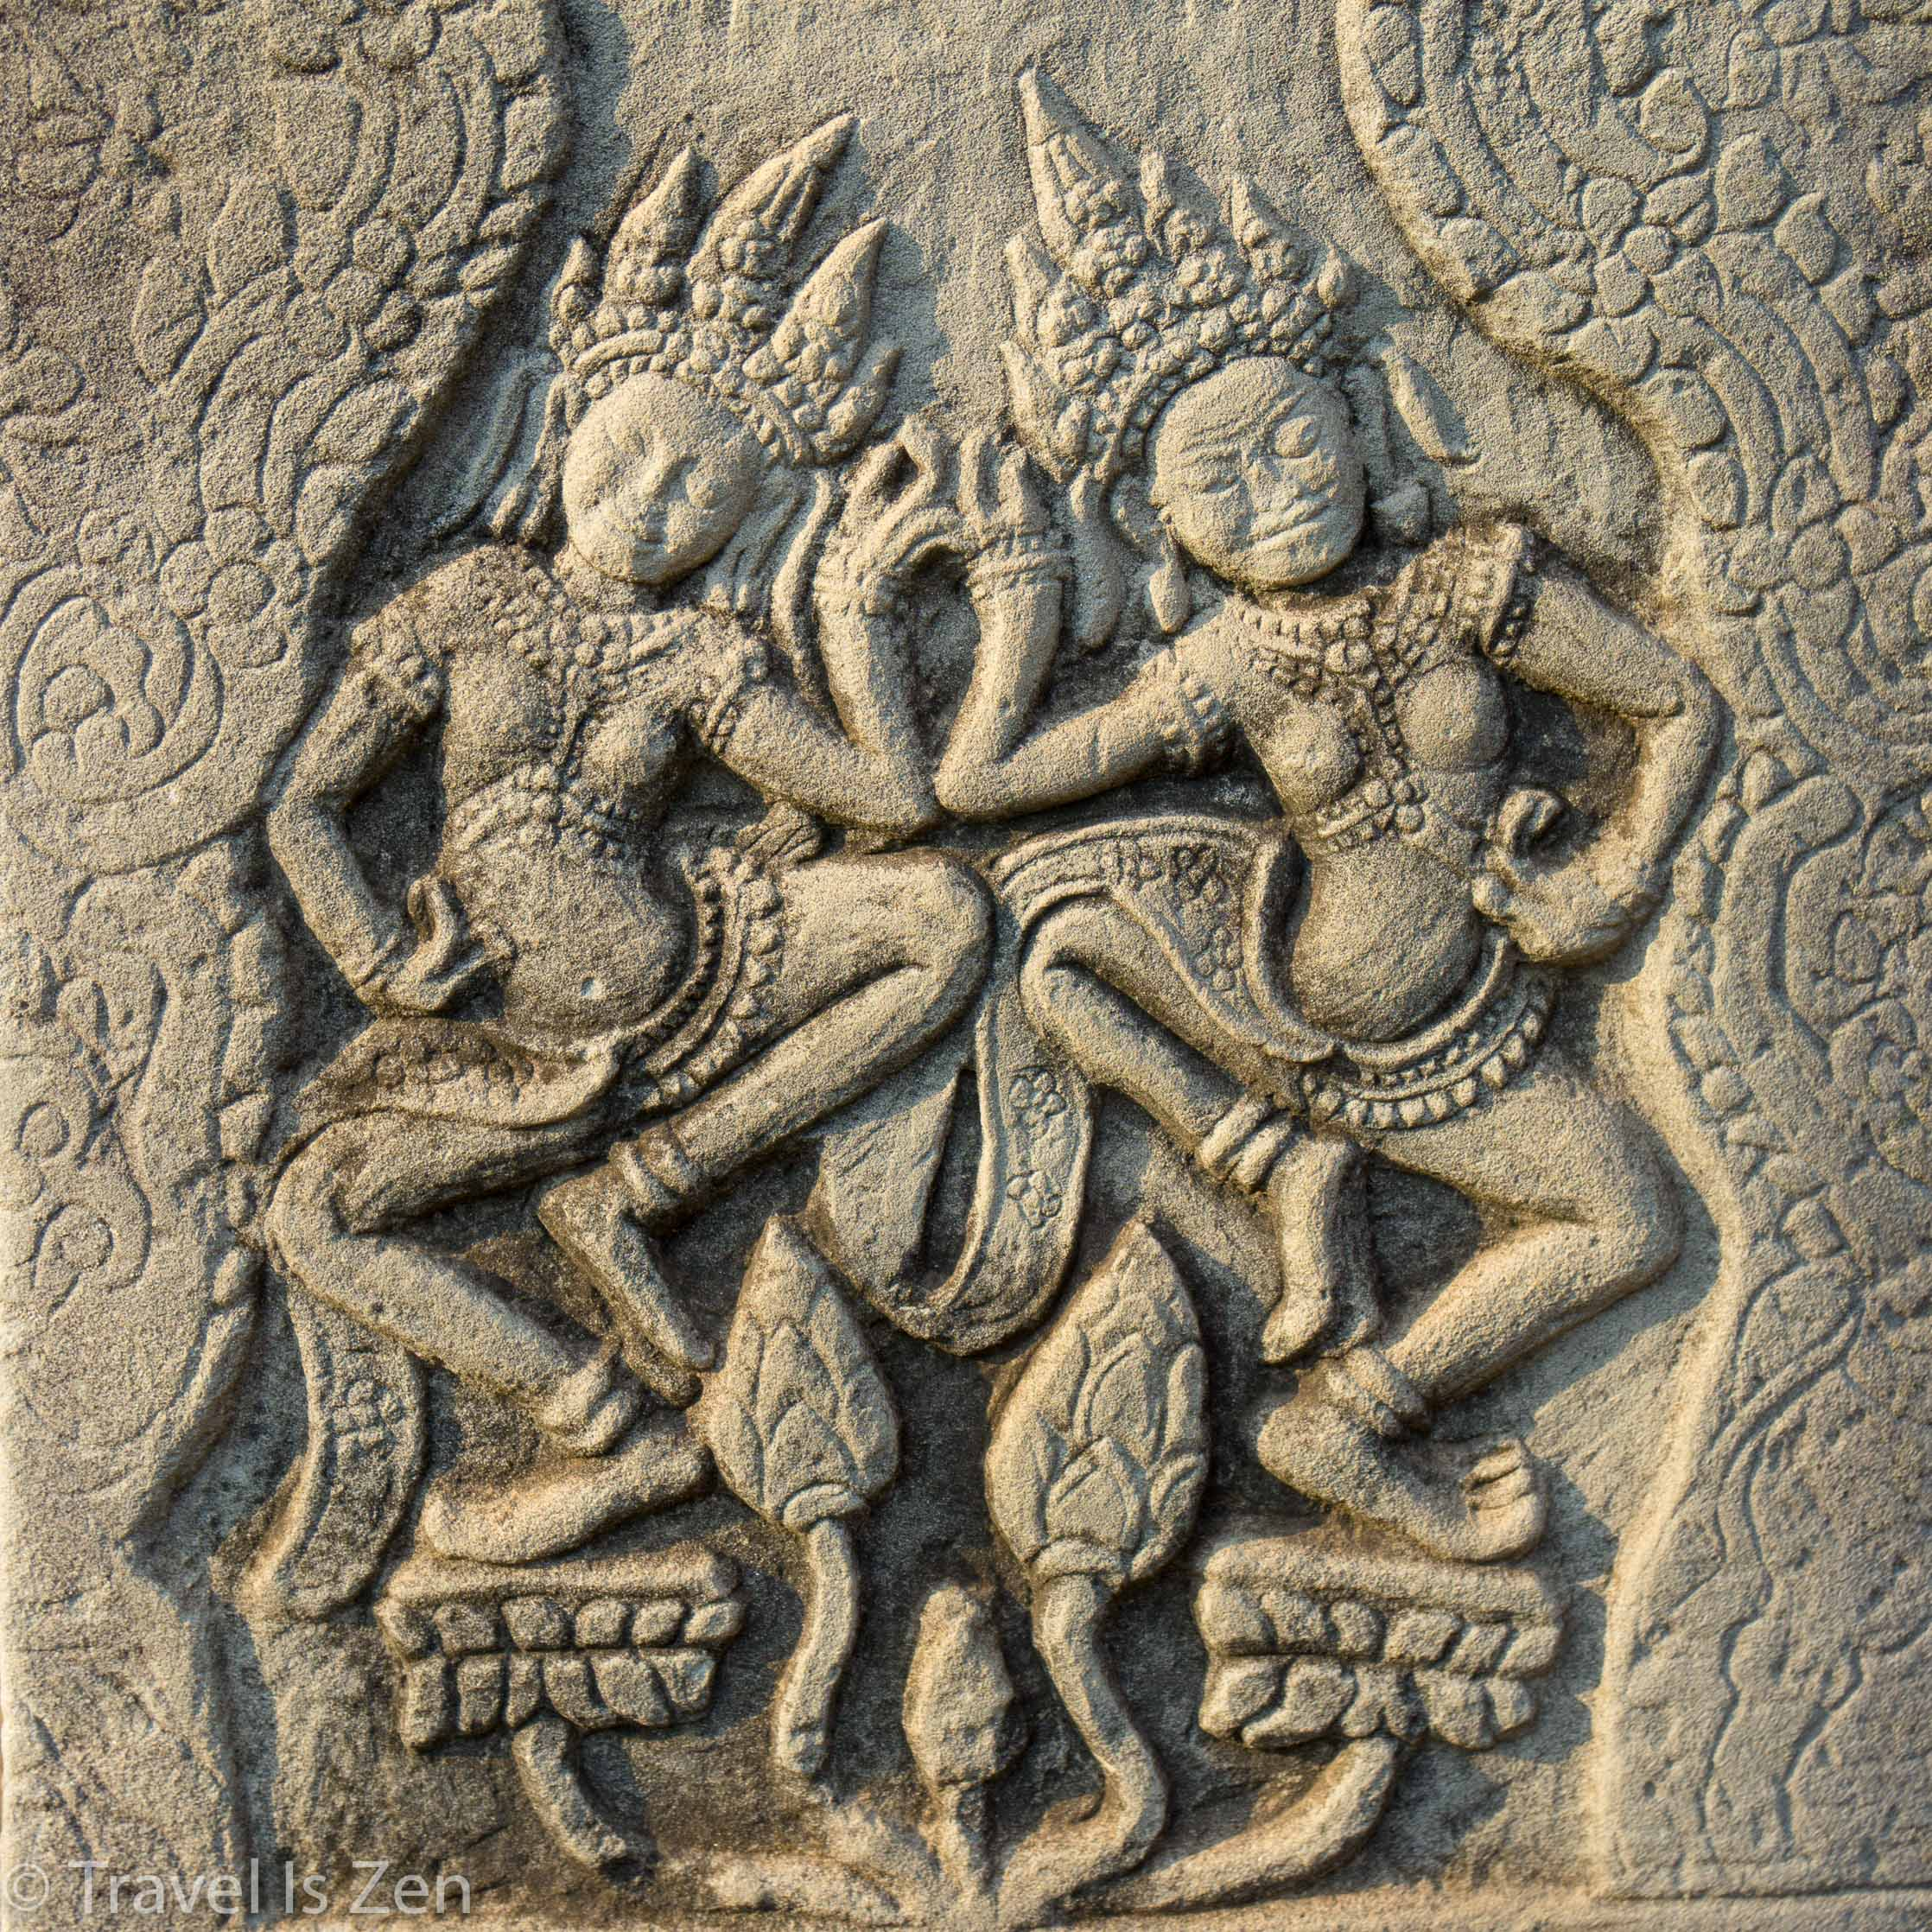 Cambodia - Siem Reap, Angkor Temple Complex, and E-Book